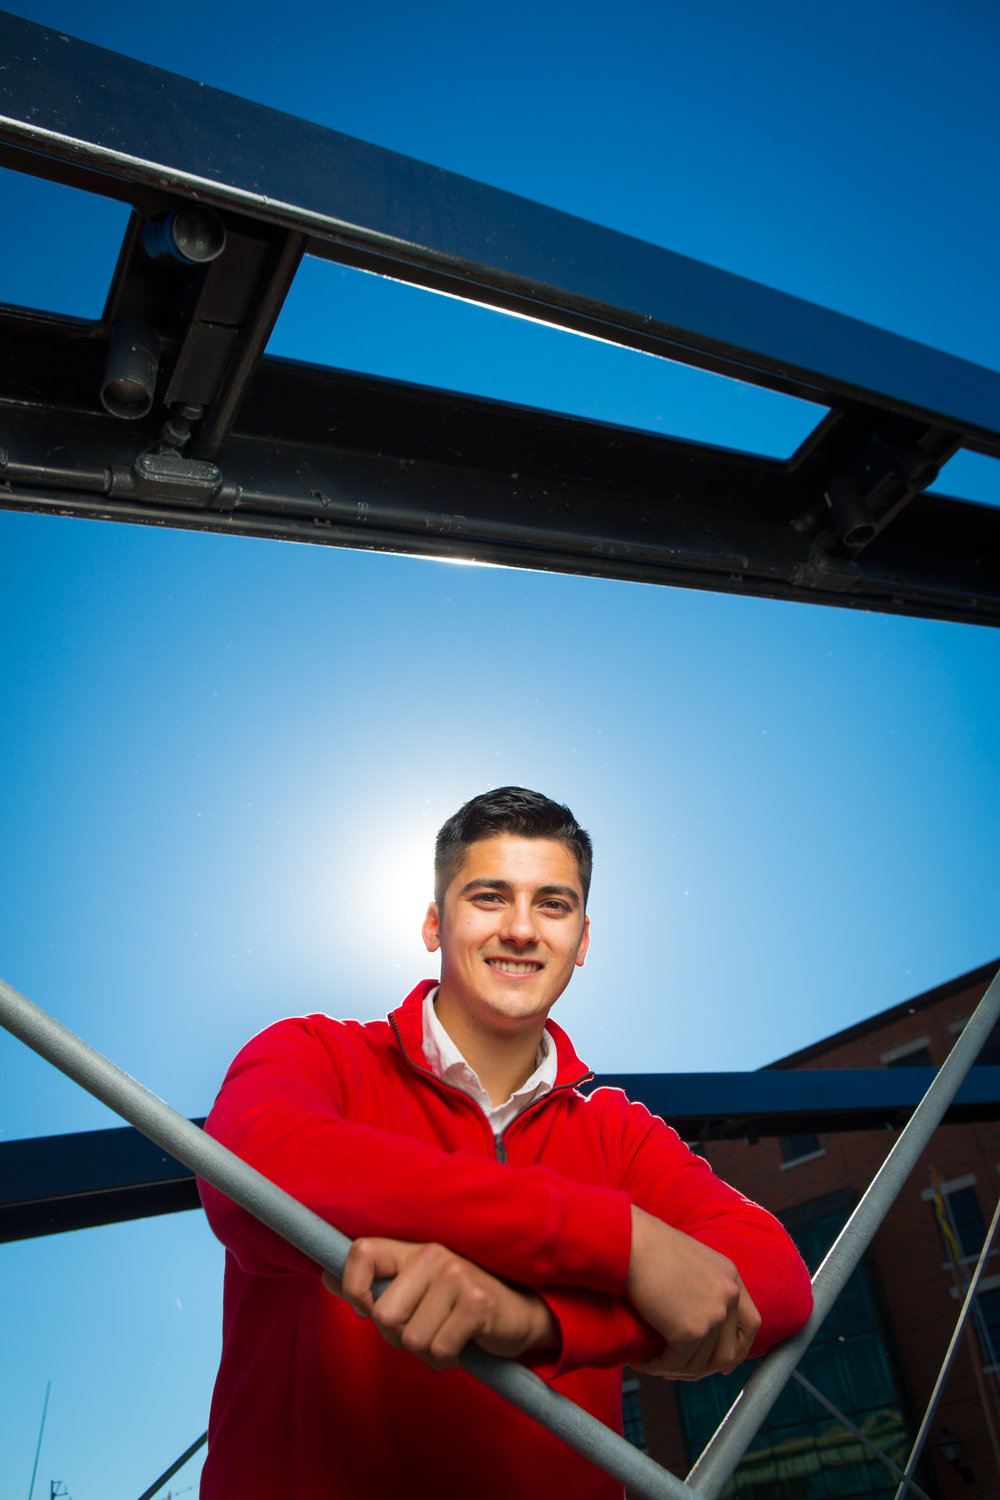 Portrait of Engineering Student James McKeehan at Canalside Historic Bridge